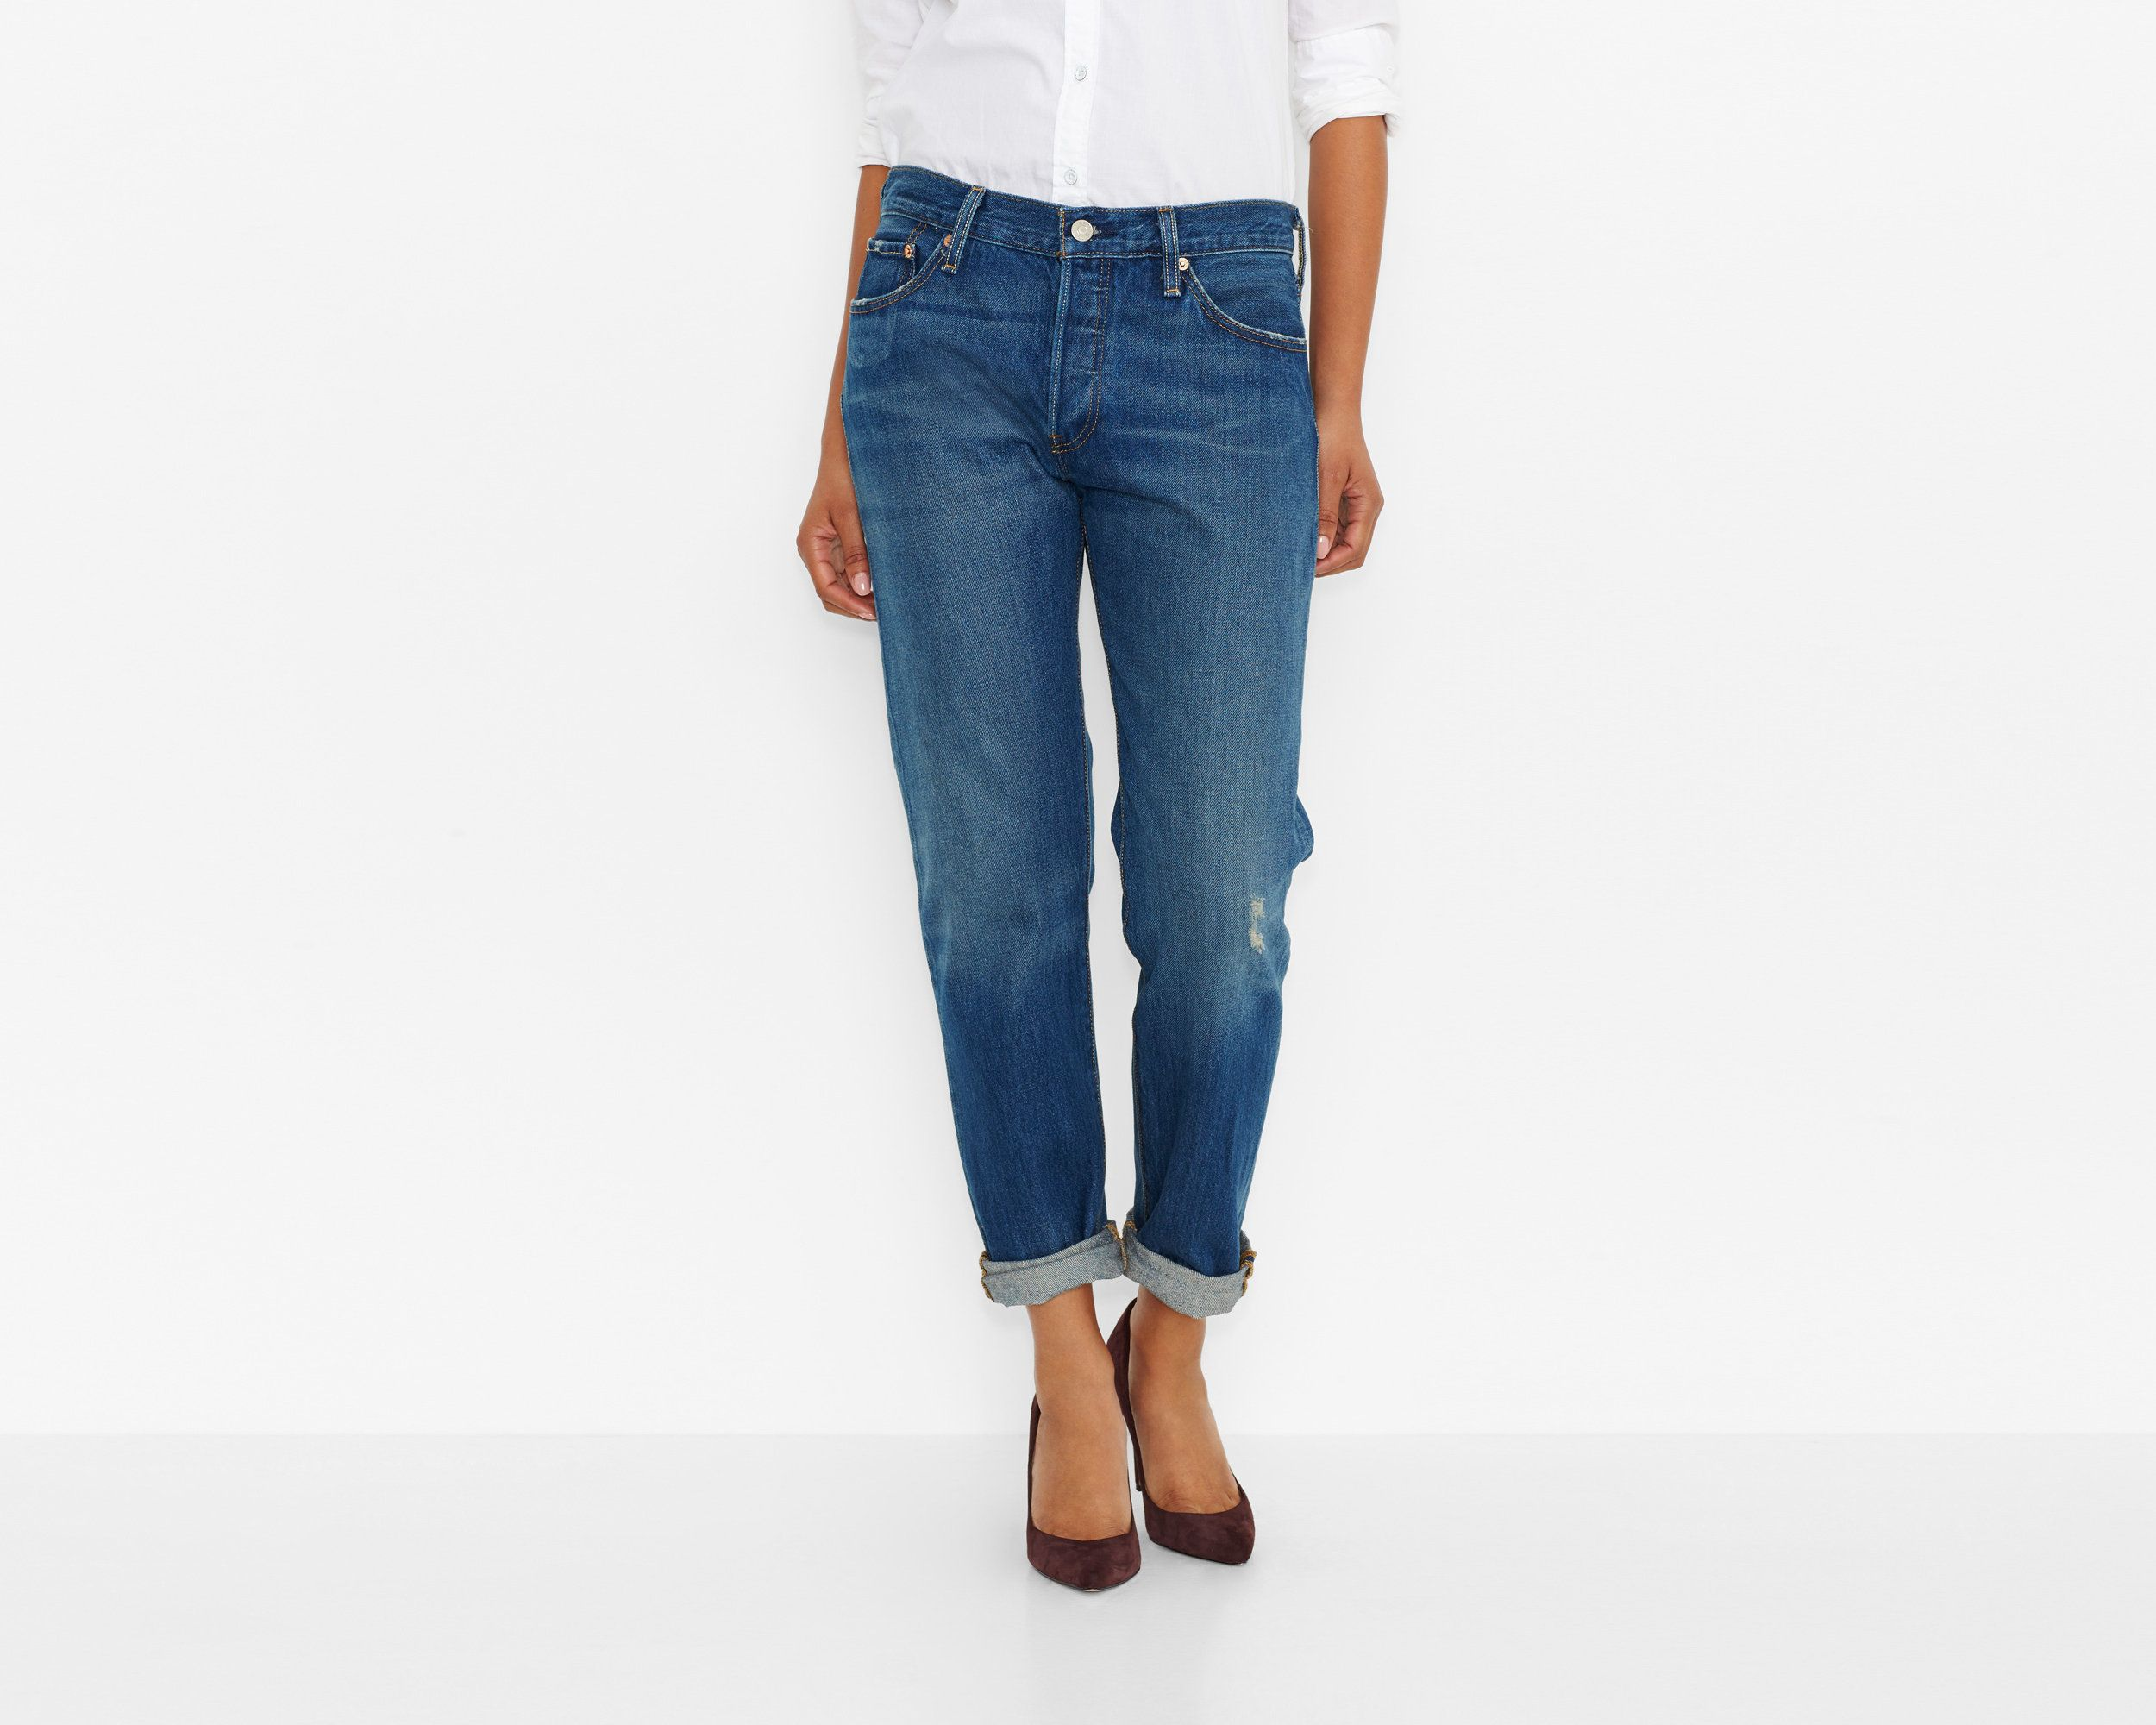 501 CT Jeans for Women | Cali Cool | Jeans | Femmes | Levi's ...